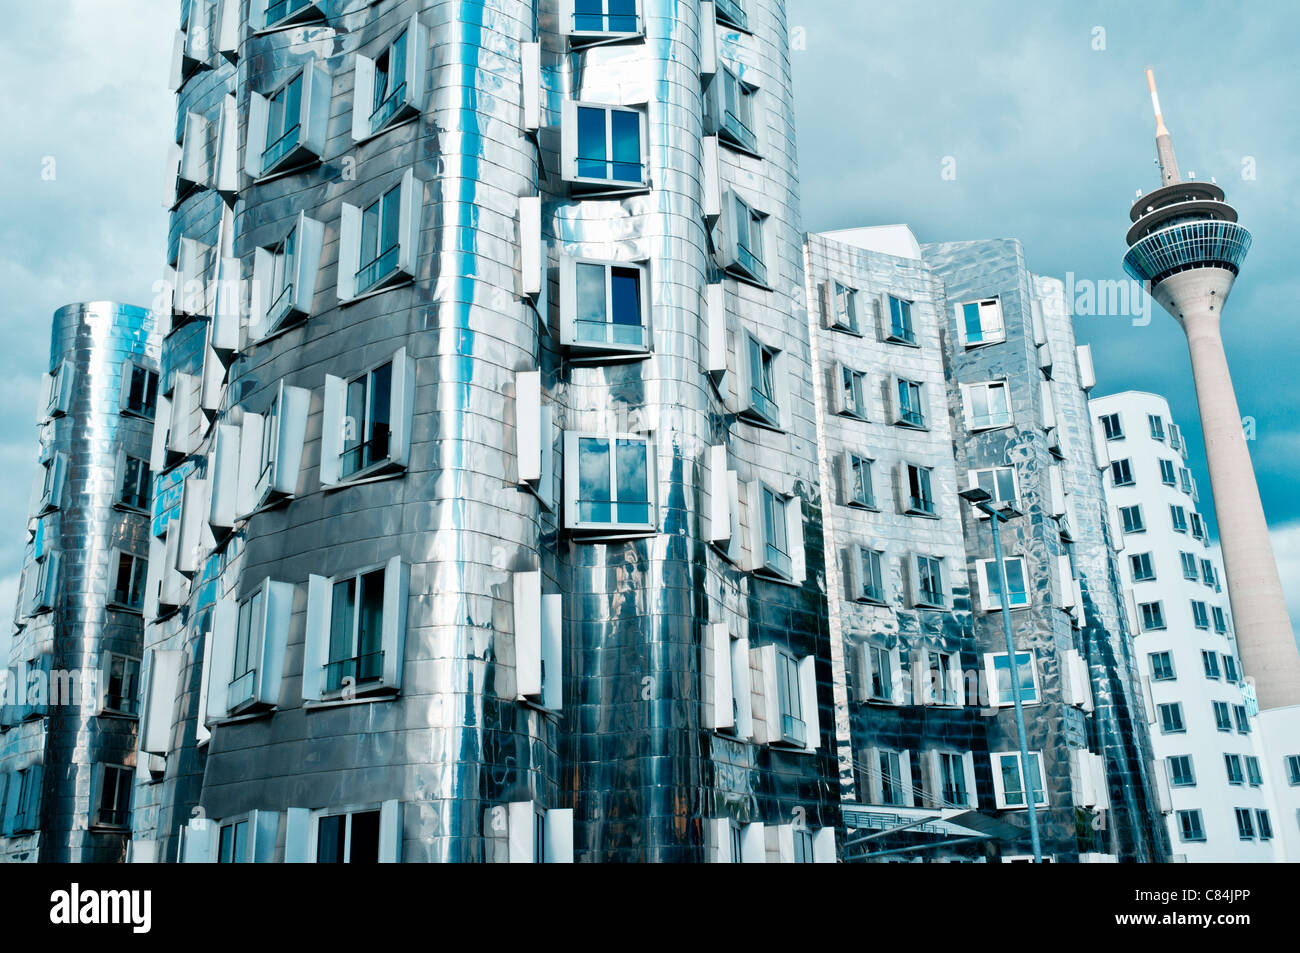 The Neuer Zollhof building at the Medienhafen, Düsseldorf, Germany Architect Frank Gehry - Stock Image